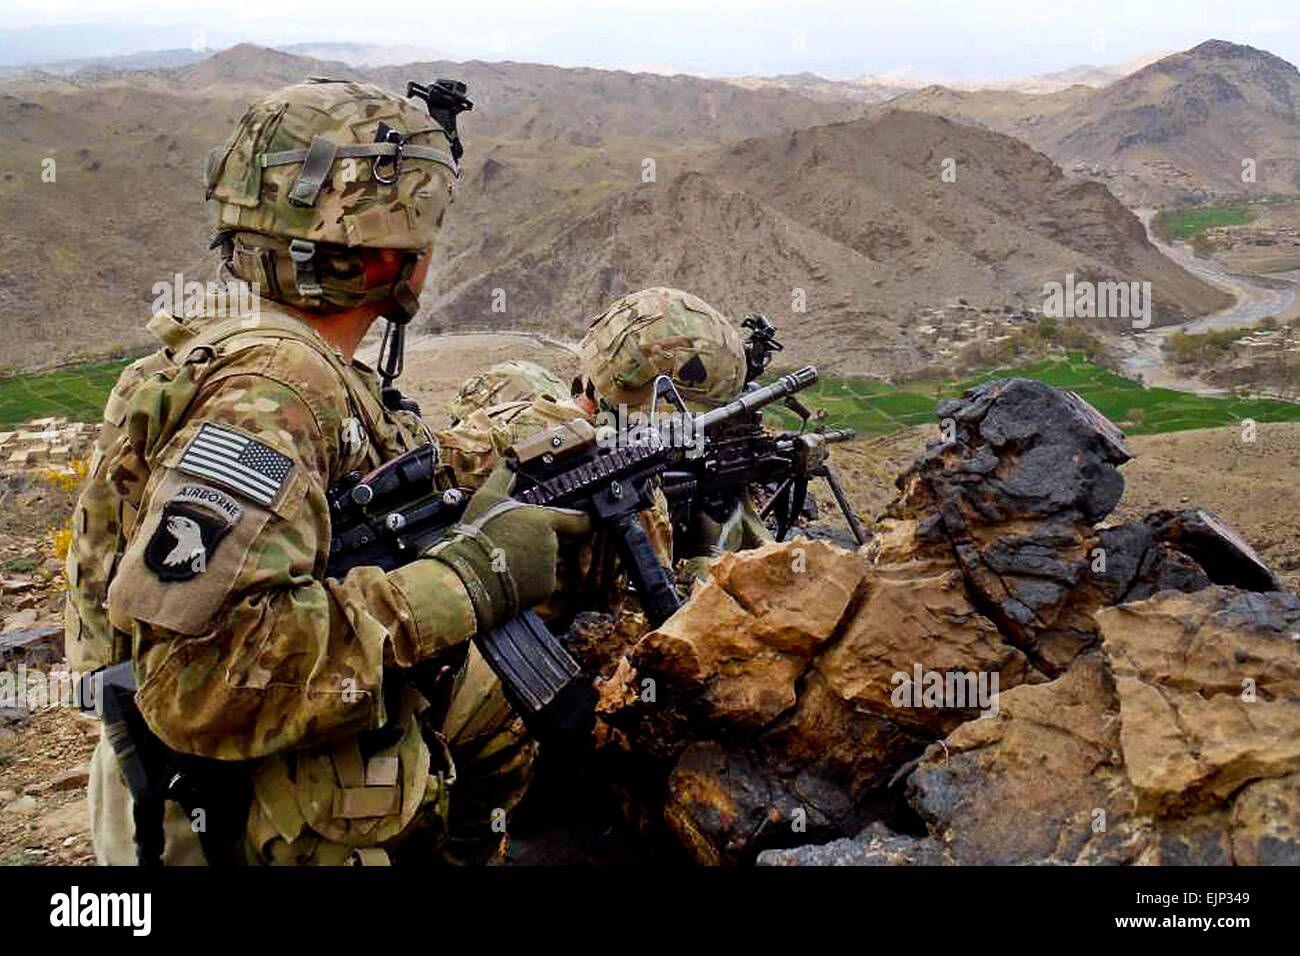 Soldiers from Company C, 1st Battalion, 506th Infantry Regiment, 4th Brigade Combat Team, 101st Airborne Division, - Stock Image